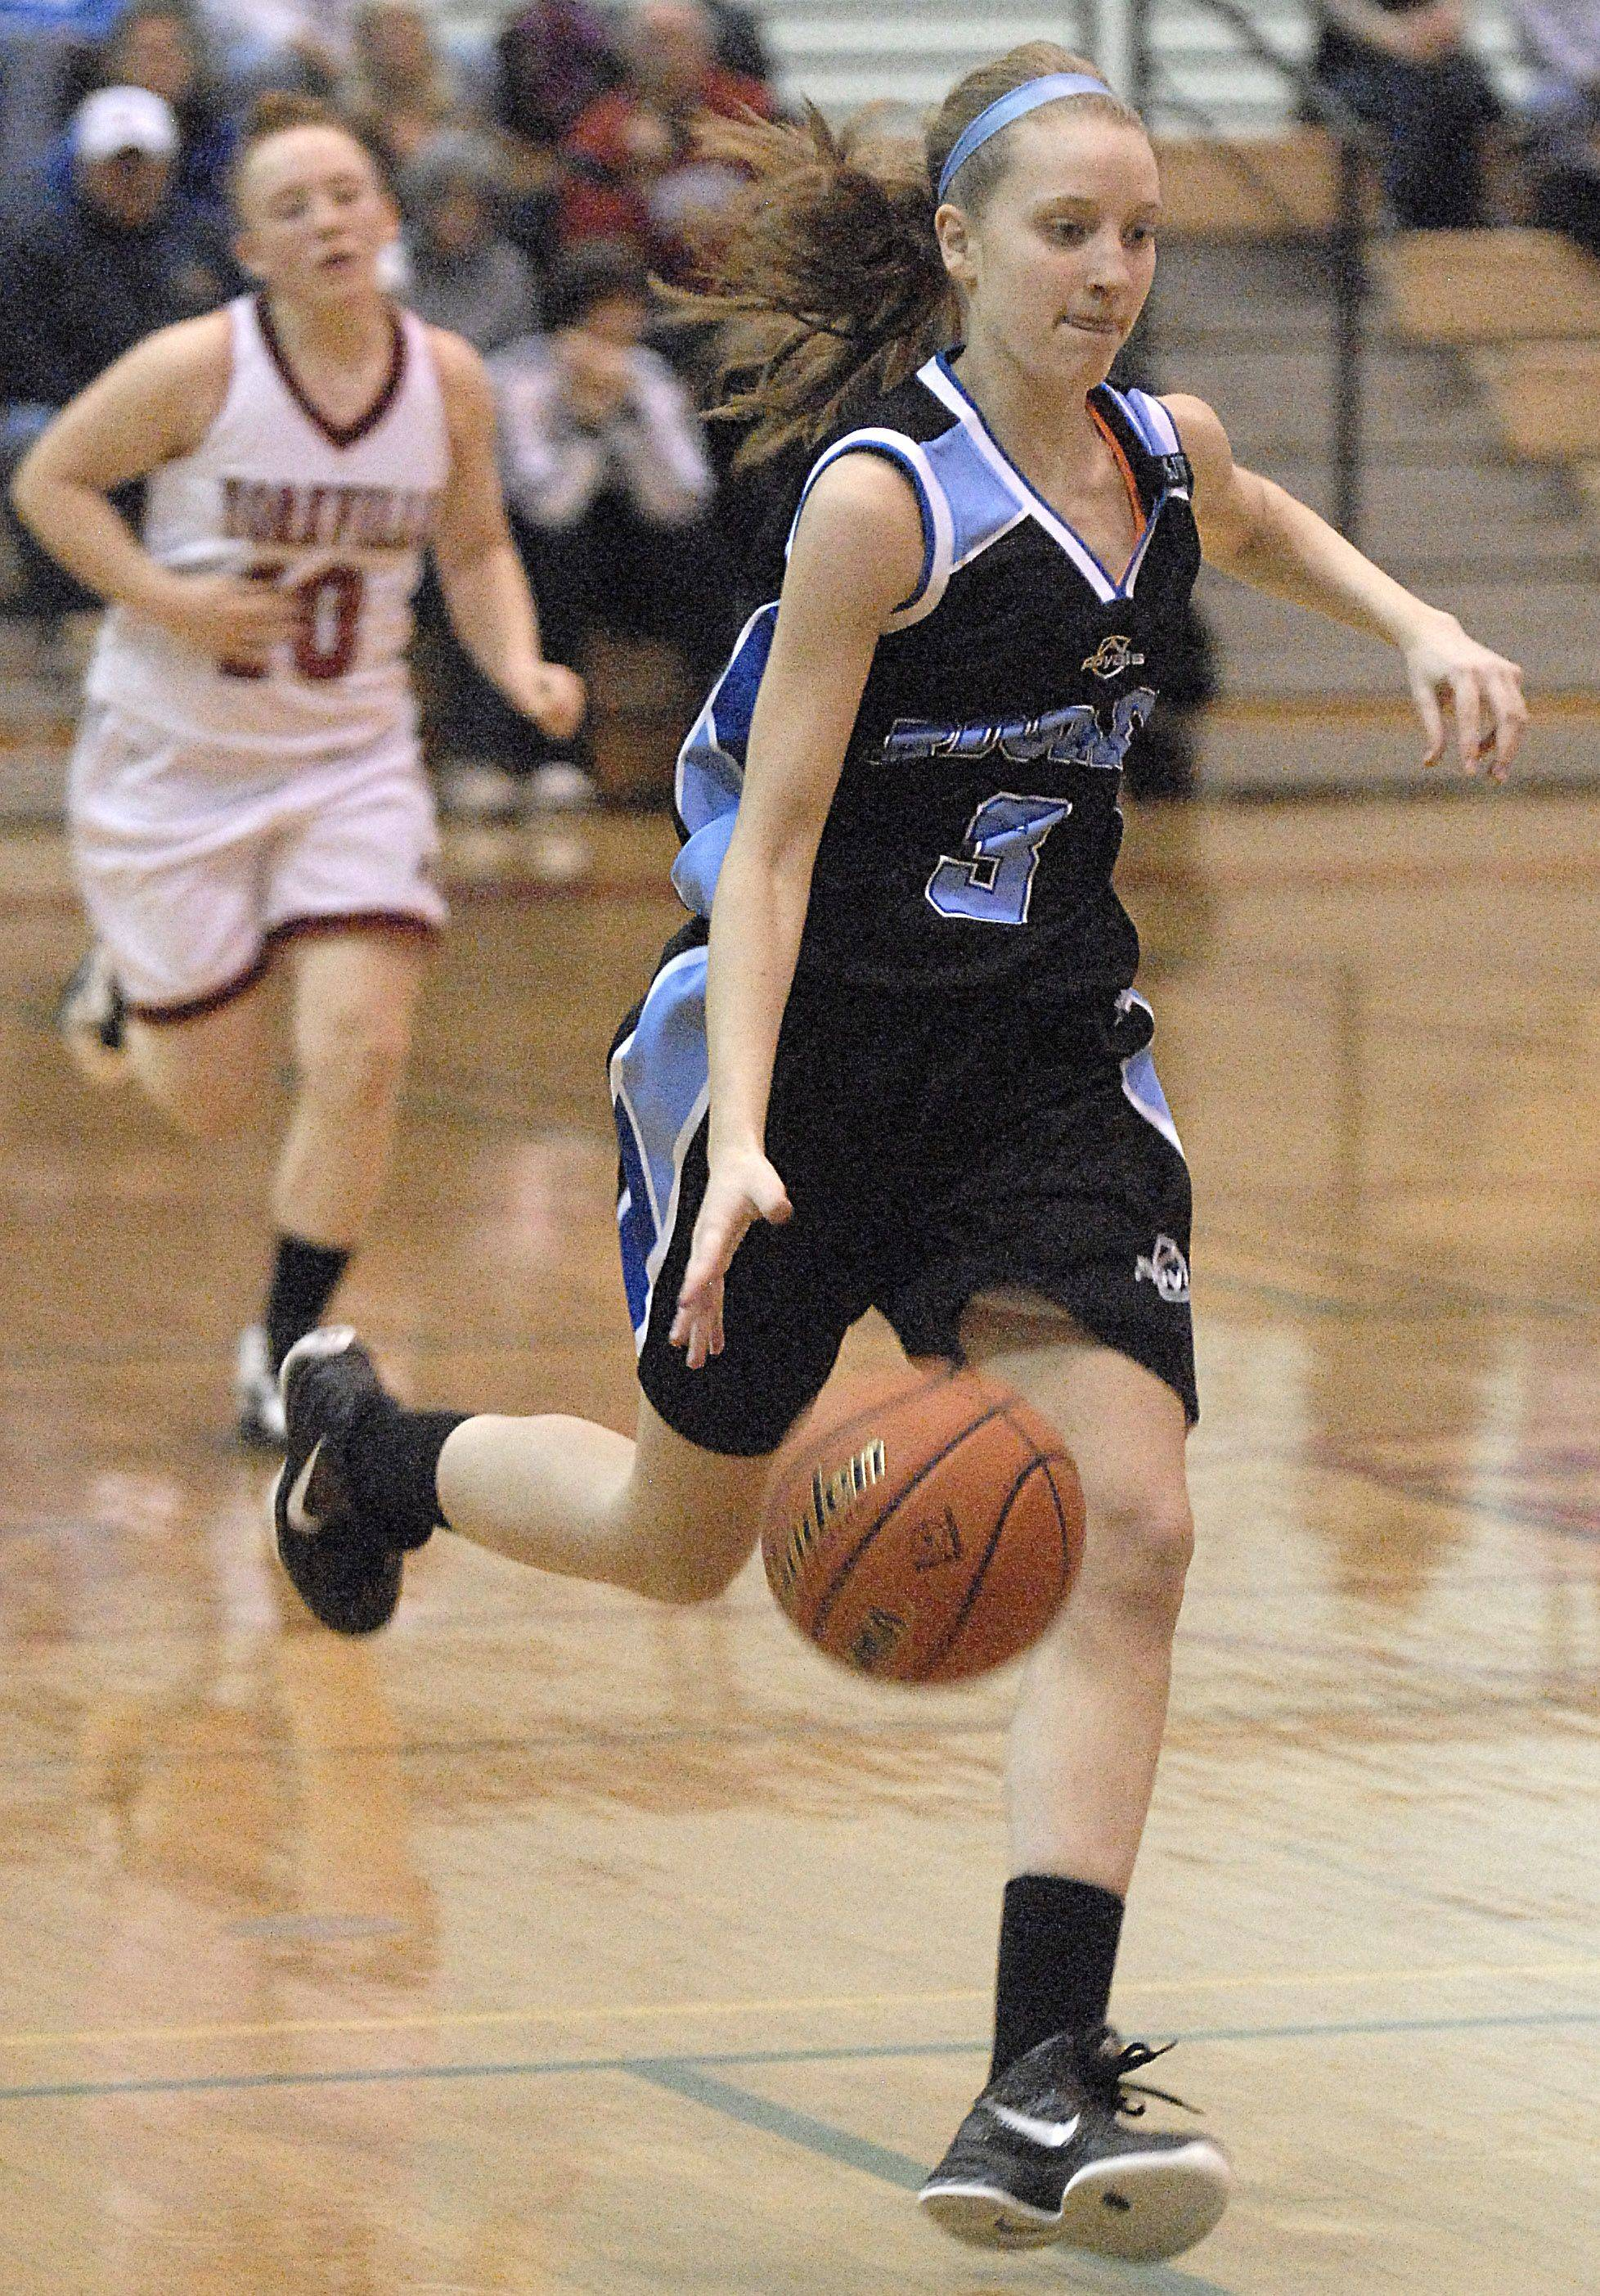 Rosary's Rachel Choice sprints down the court in the first quarter vs Yorkville at the regional game on Wednesday, February 15.